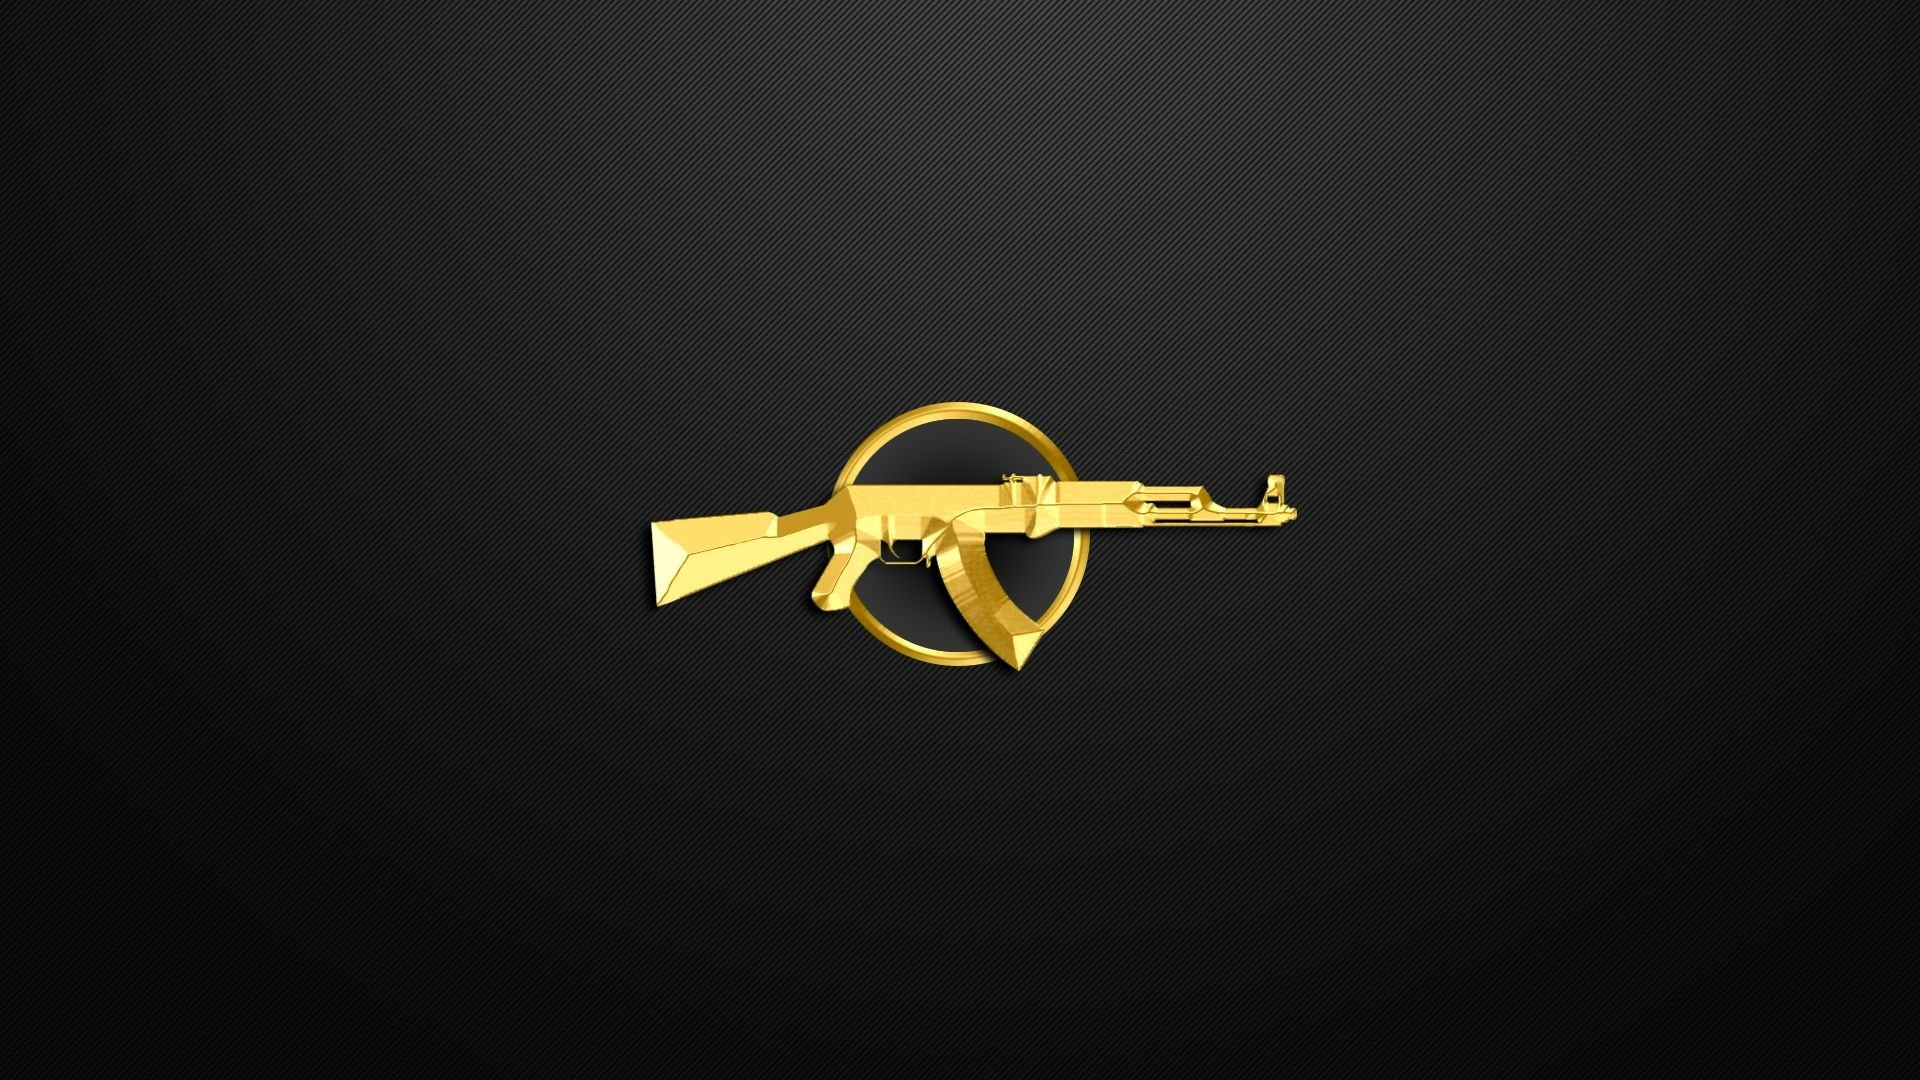 200 Counter Strike Global Offensive Hd Wallpapers Background